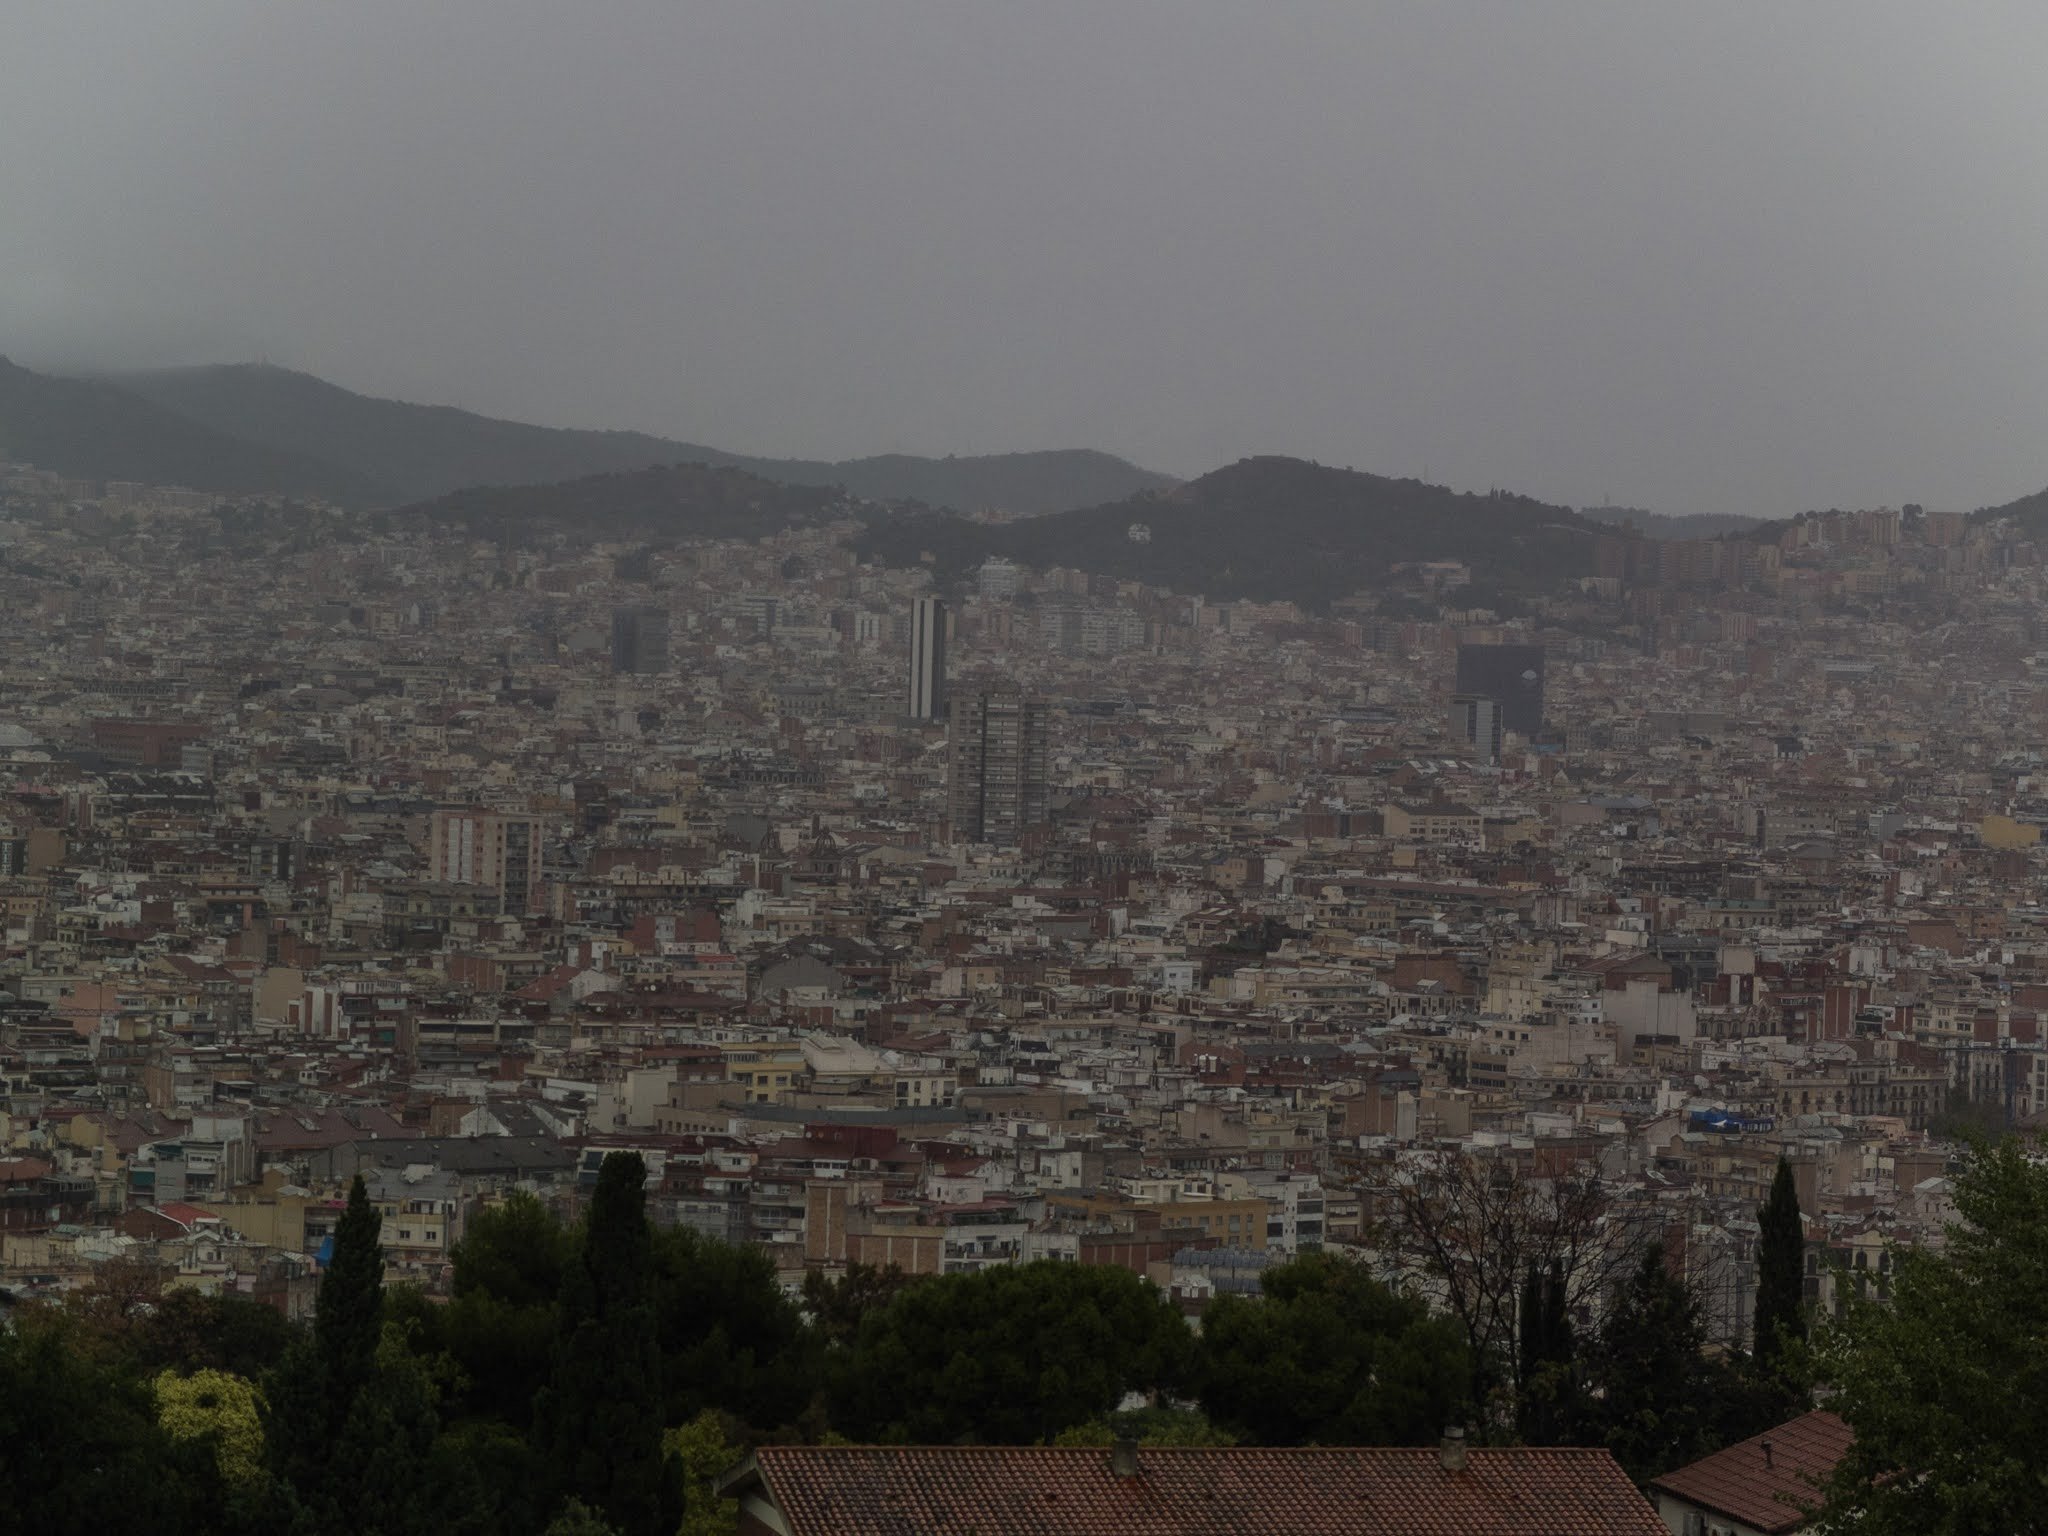 View of the city of Barcelona on a rainy day.